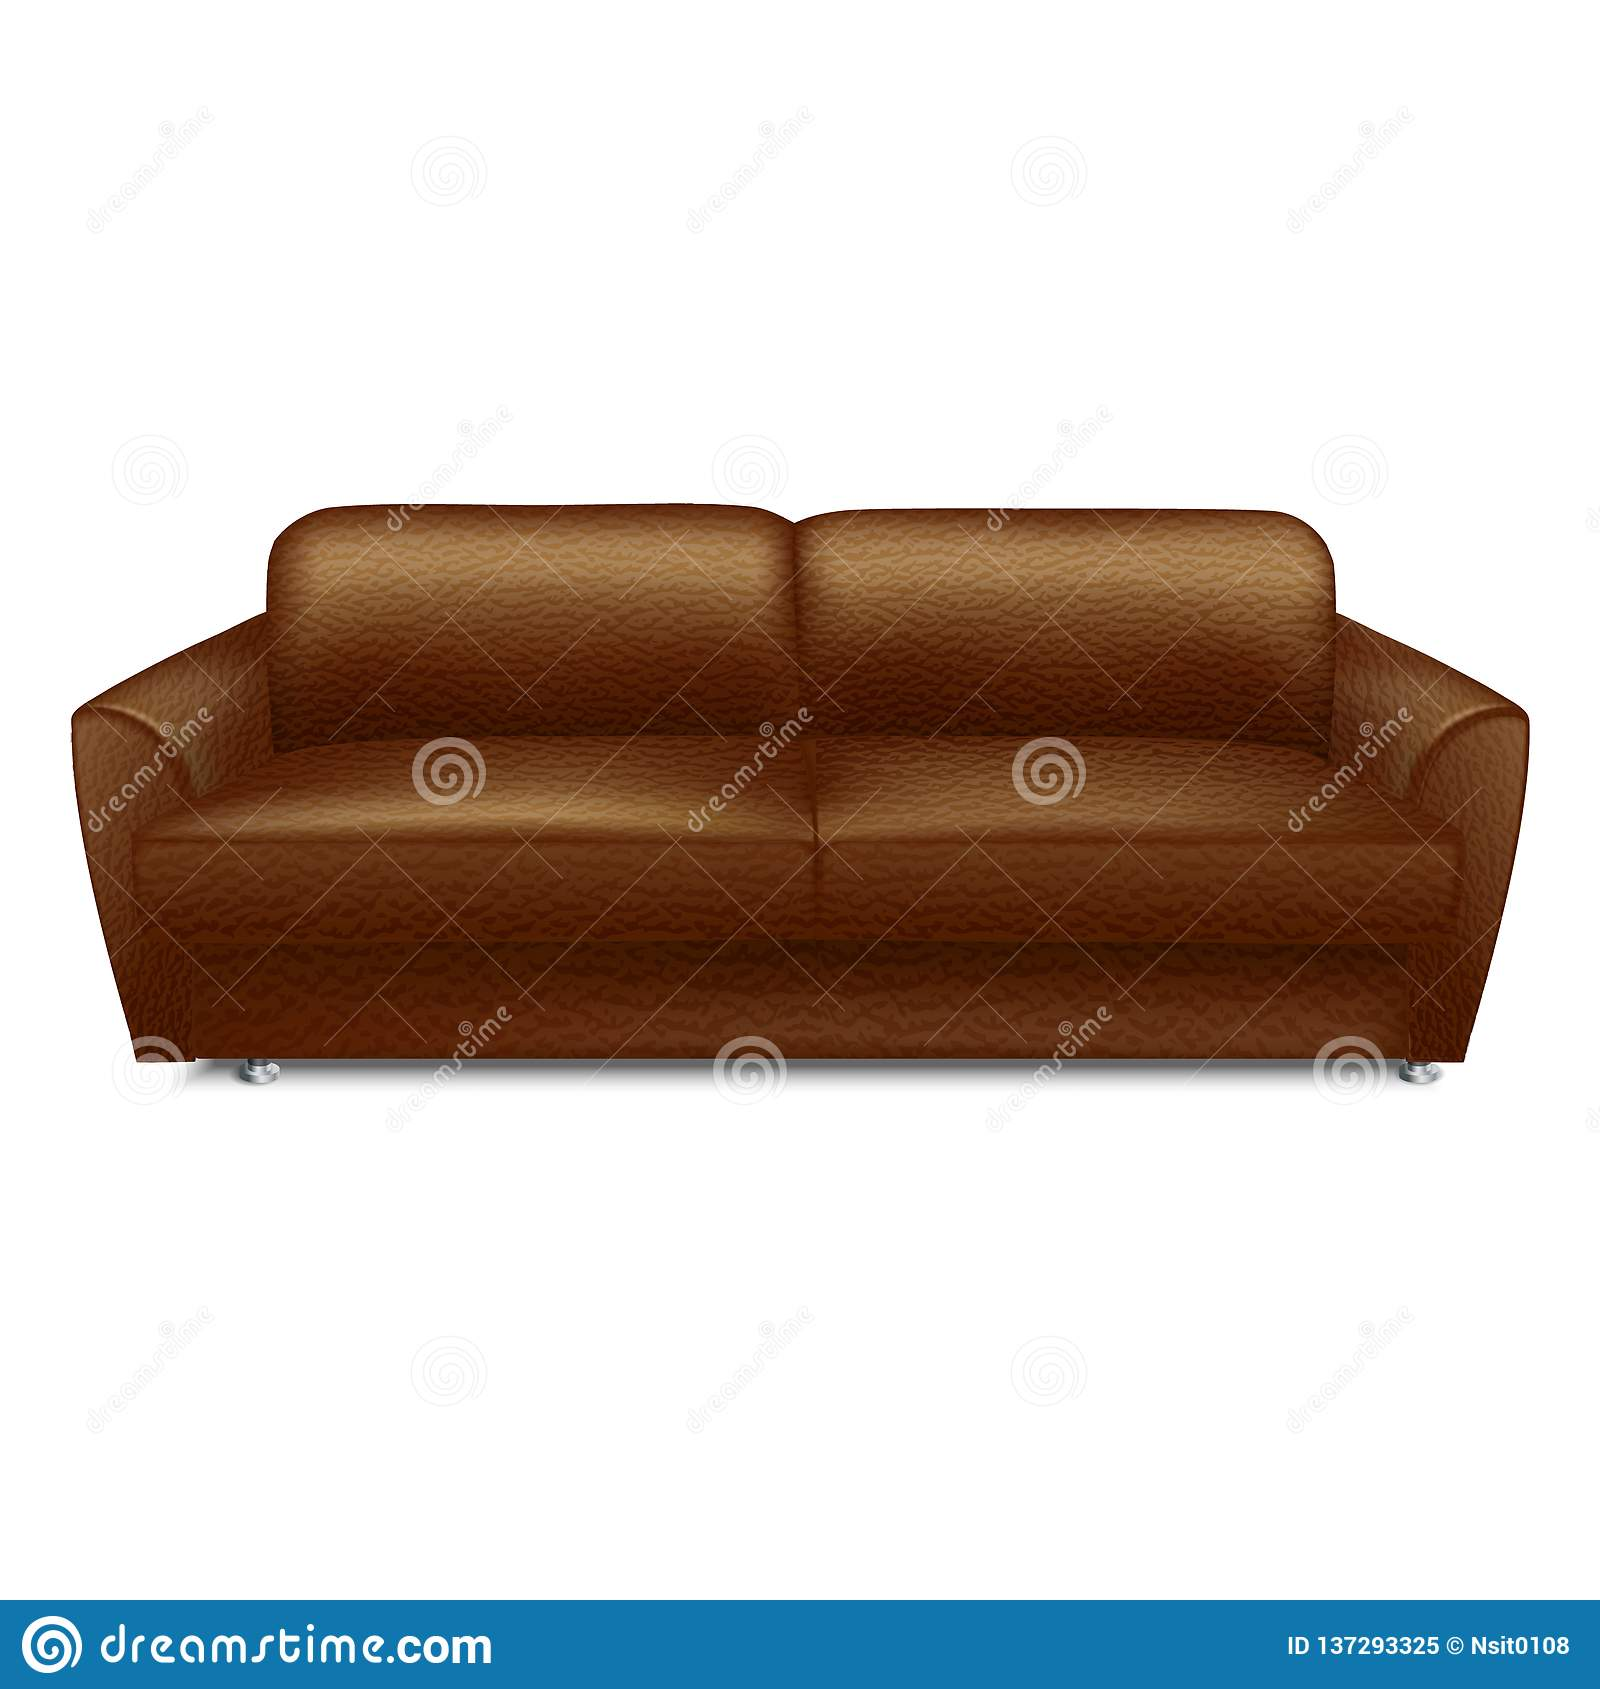 Outstanding Soft Leather Sofa Icon Realistic Style Stock Vector Dailytribune Chair Design For Home Dailytribuneorg